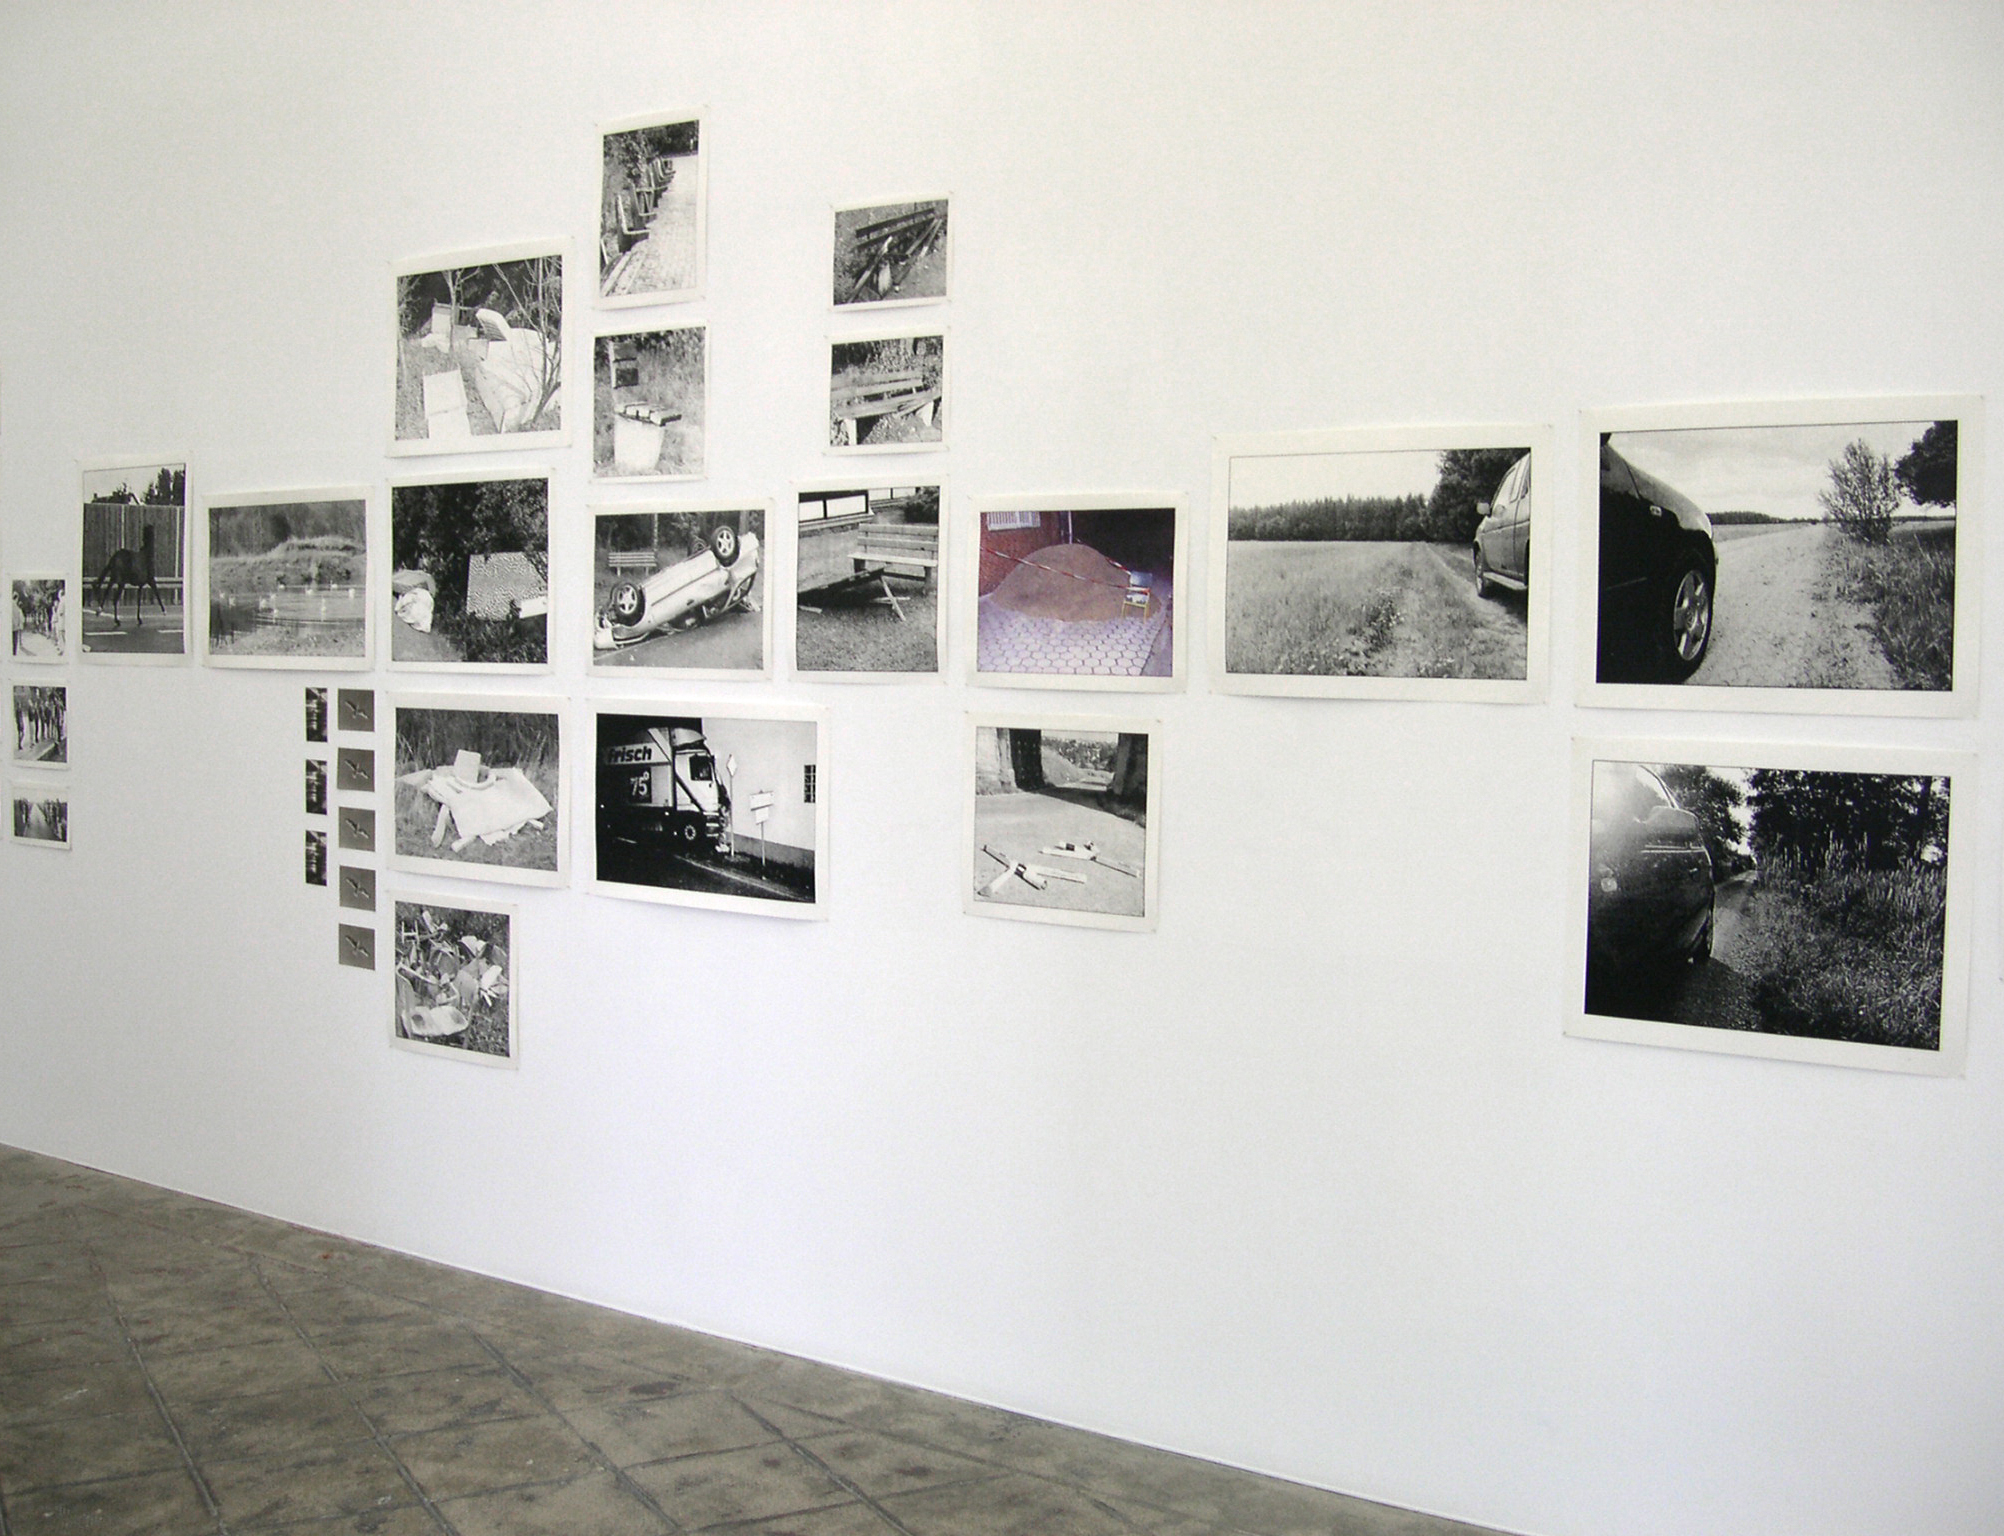 Installation view: Cars and Houses, ProjecteSD, 2004 |  | ProjecteSD